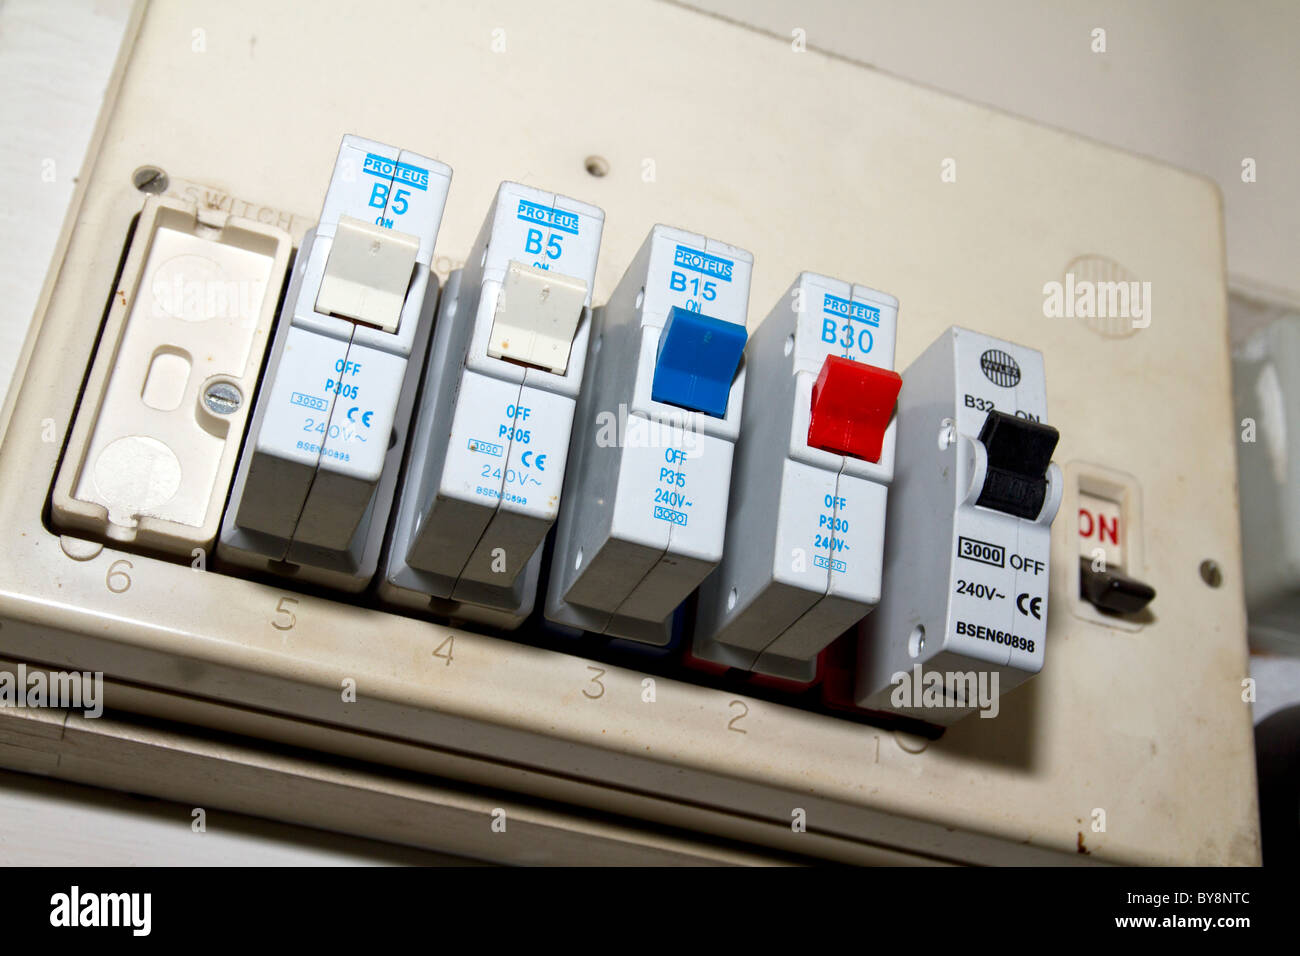 Electric Fuse Box Types Wiring Diagram Schemes Types Breaker Fuse Box Fuse  Box Types